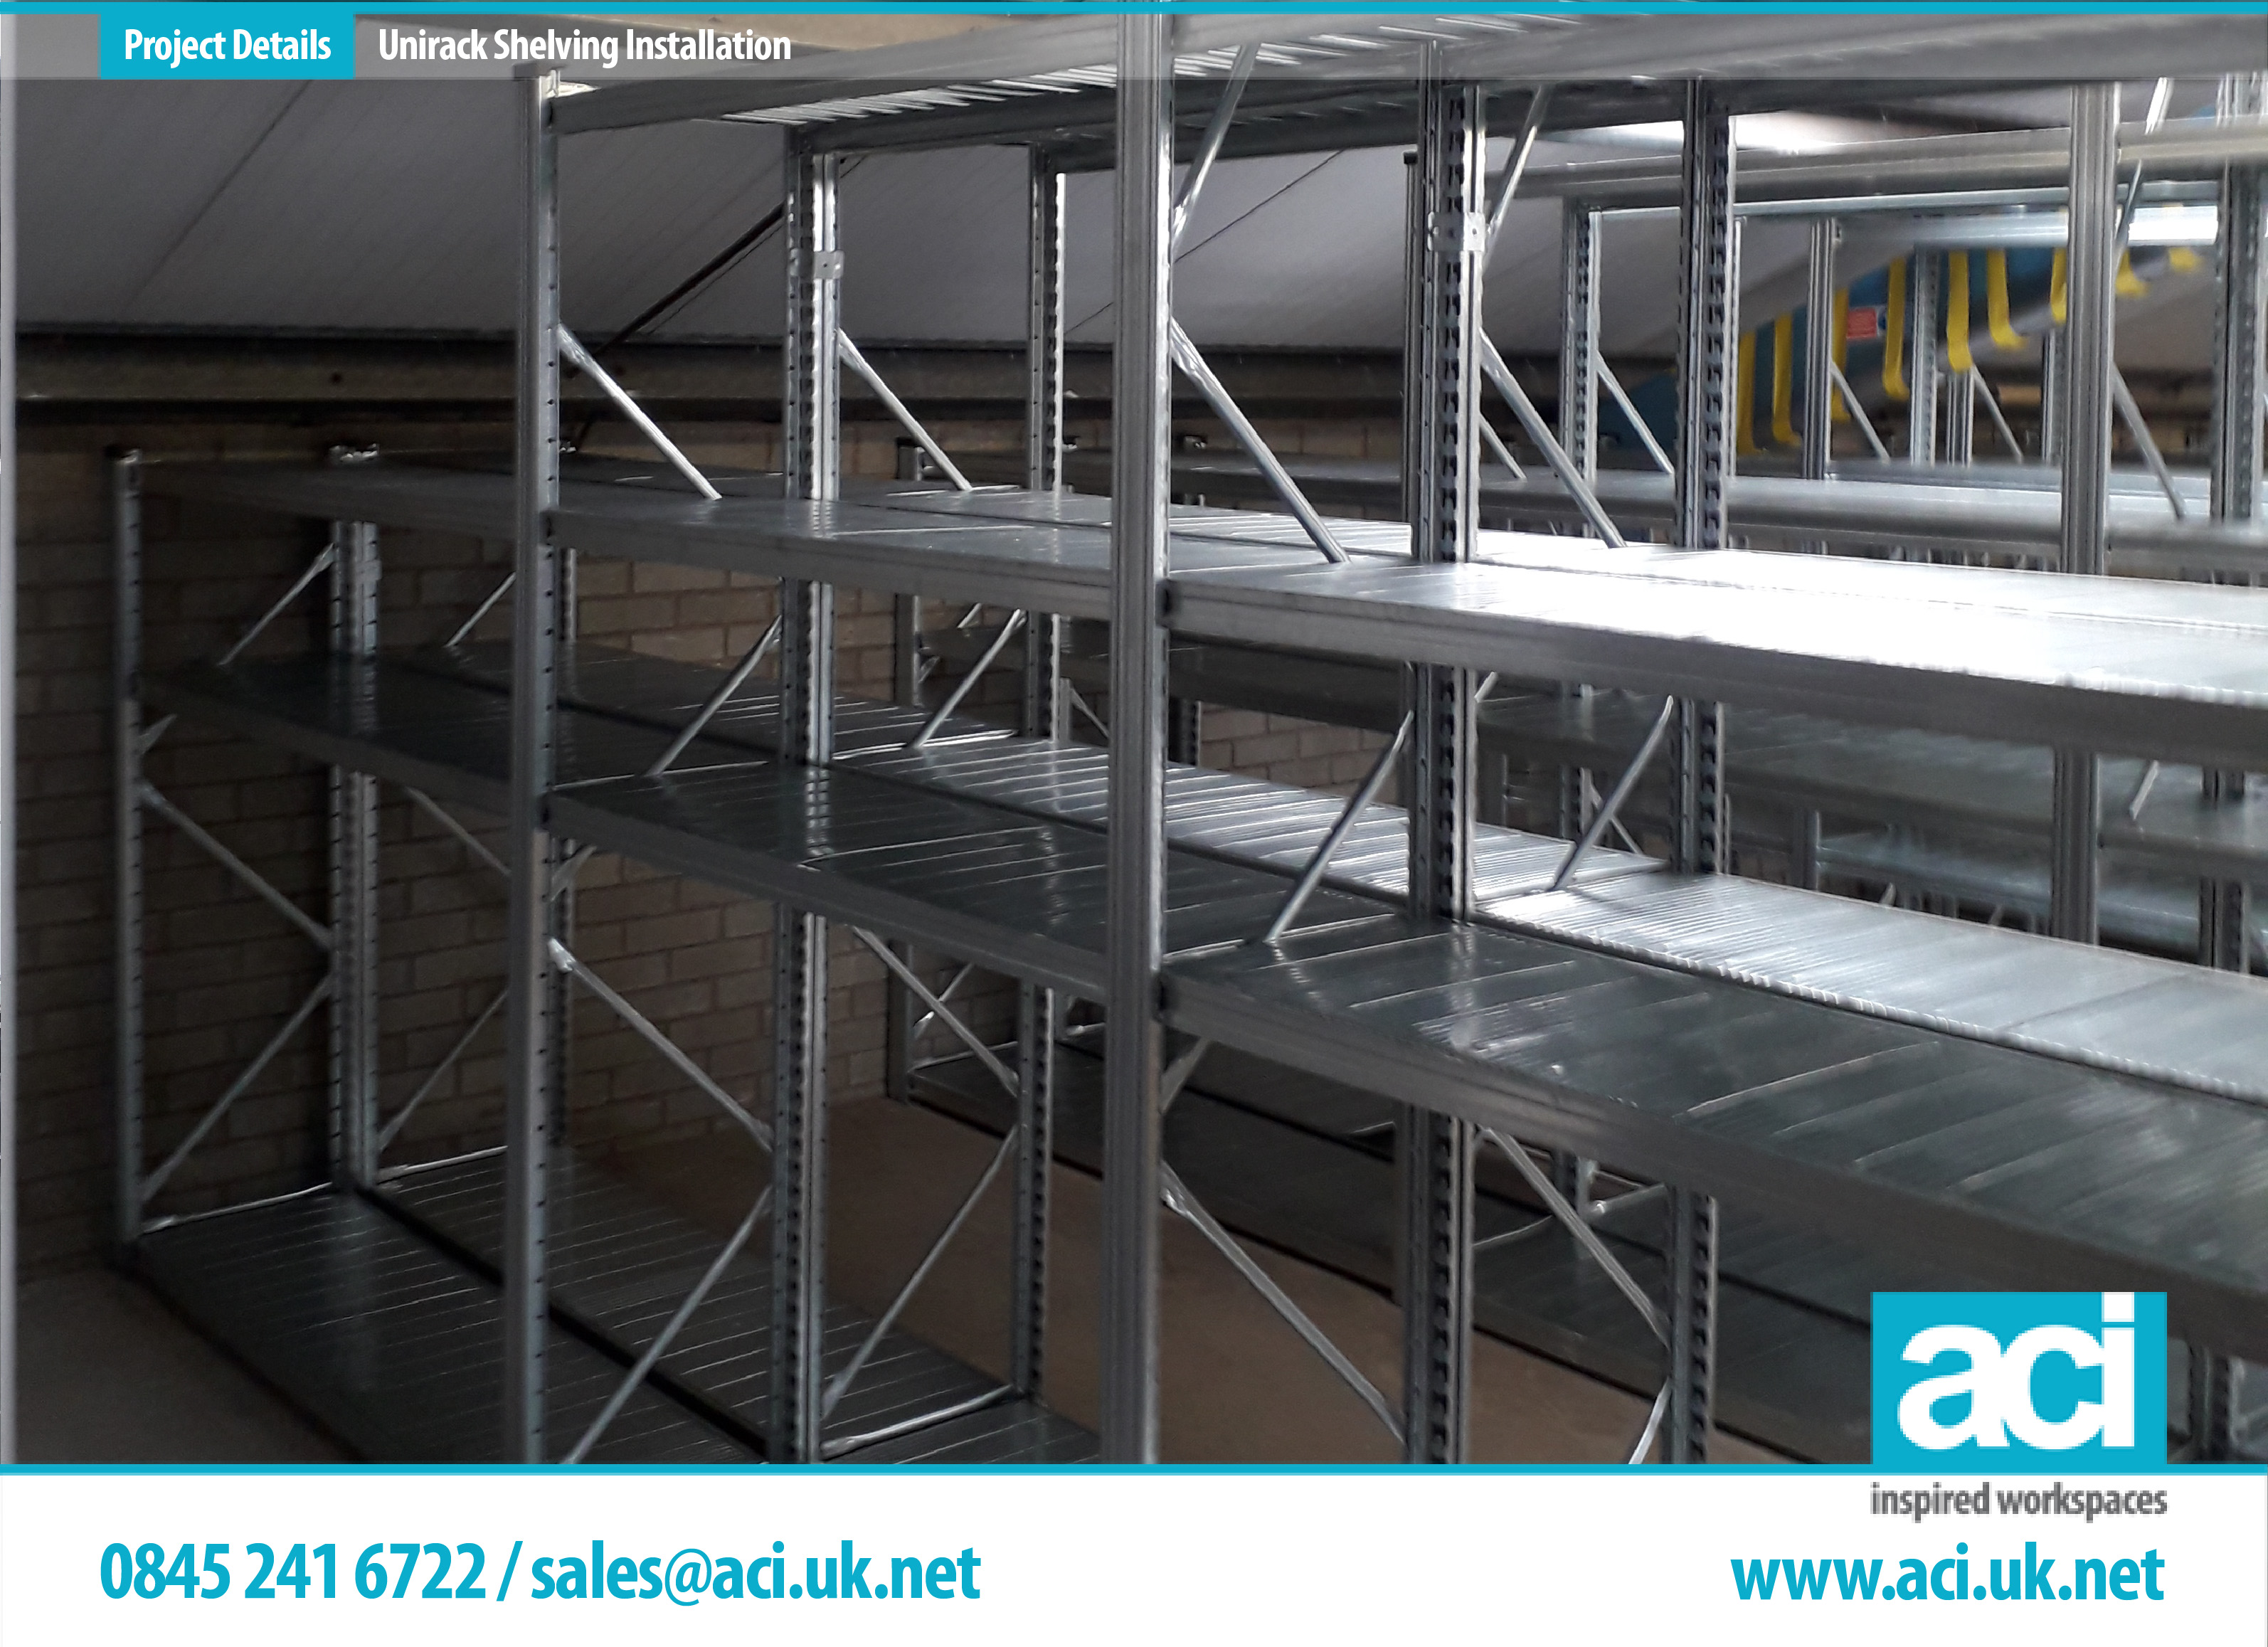 Image of Warehouse Shelving